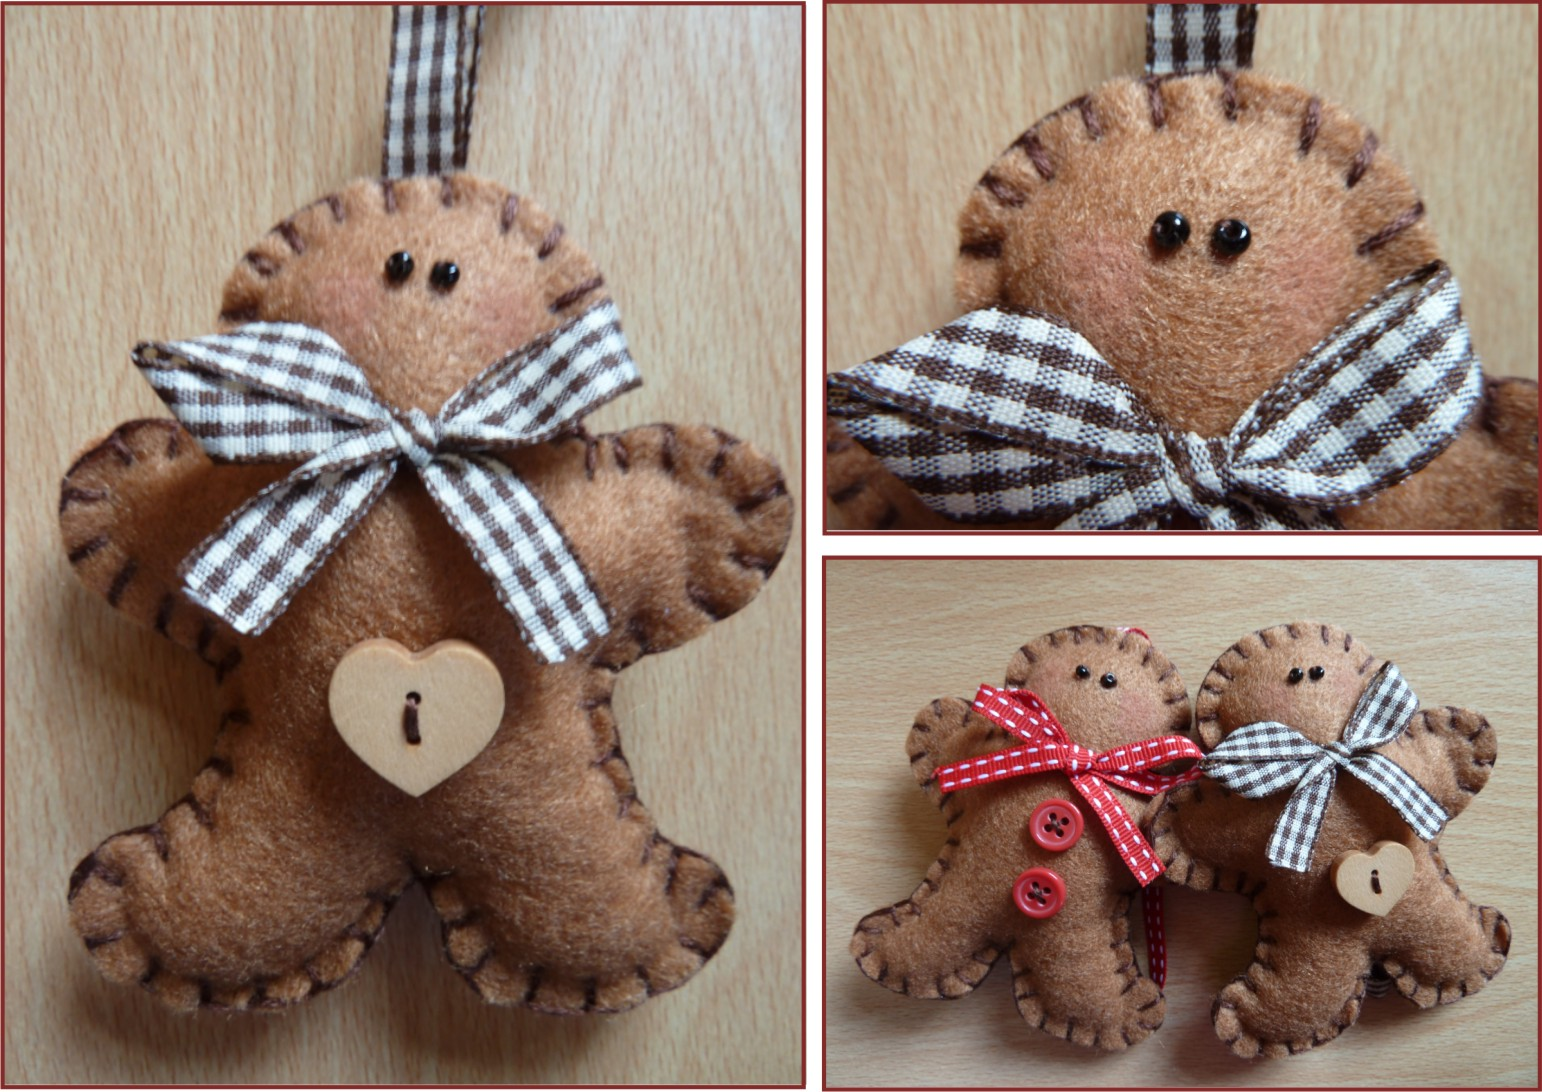 These hand crafted gingerbread men hangers are made from felt and come